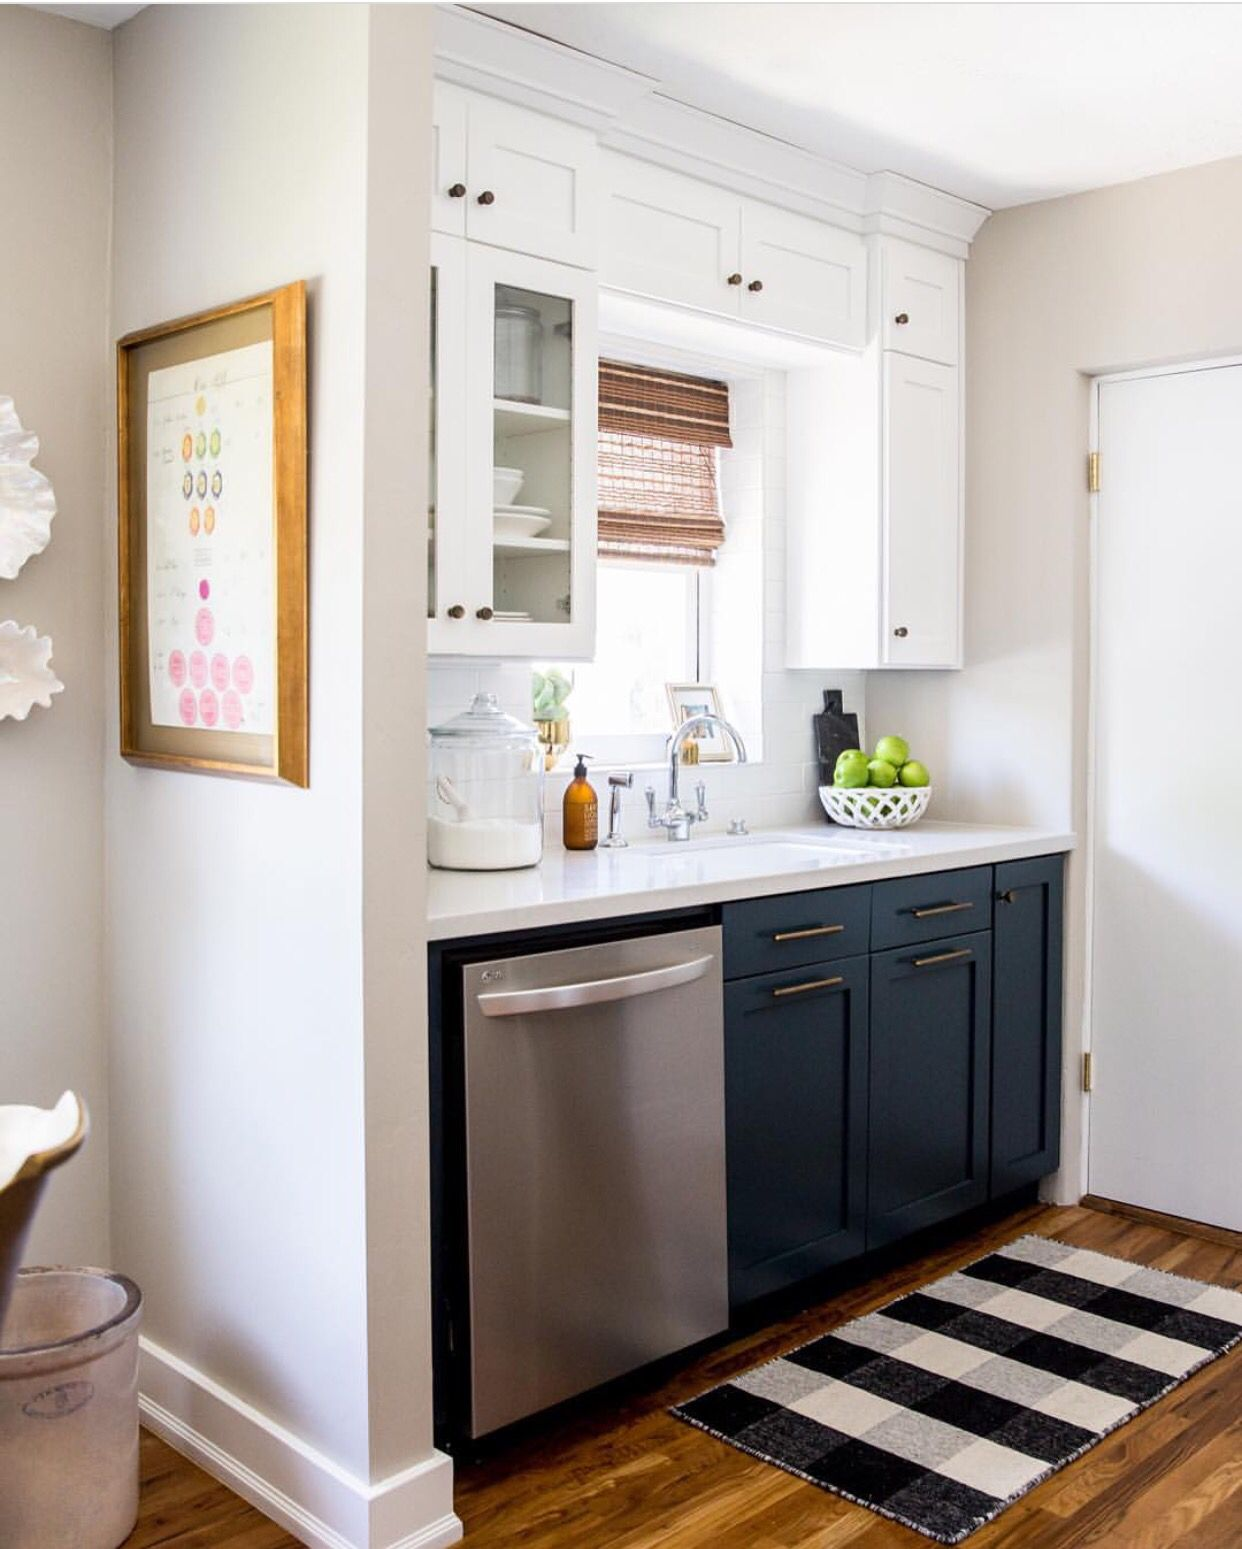 Pin By Erika Howell On Butler's Pantries And Wet Bars